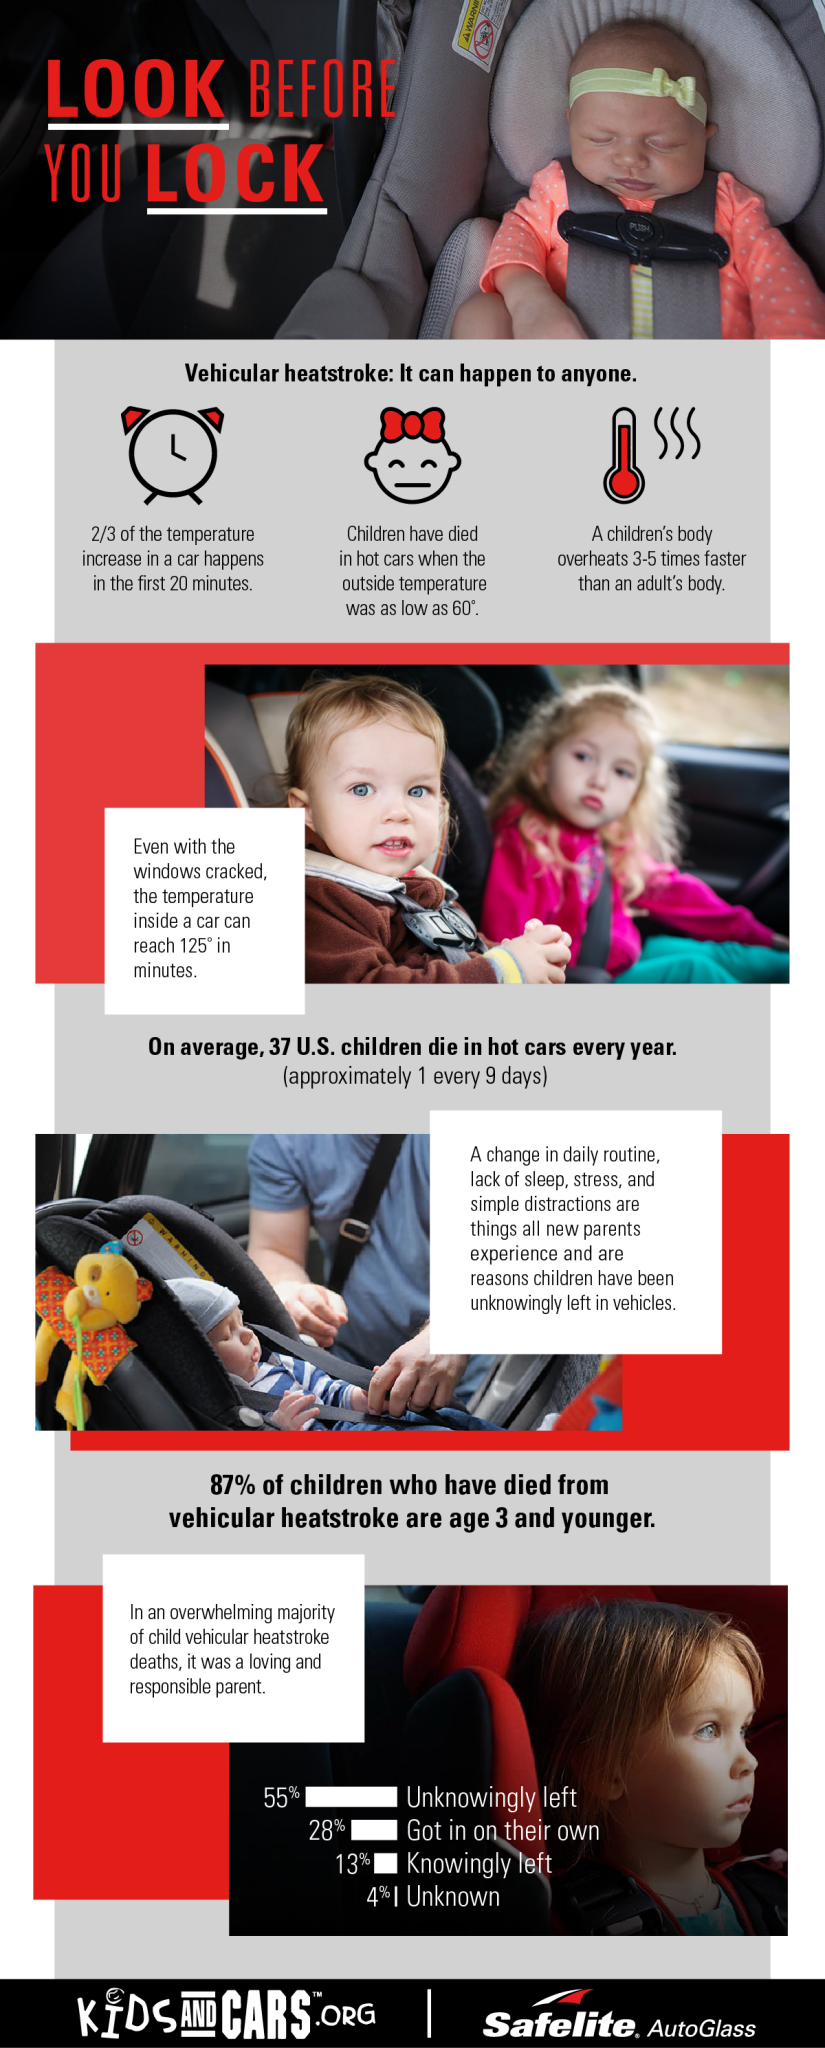 Vehicular heat stroke can end a child's life very quickly on hot summer days. Here are the facts.